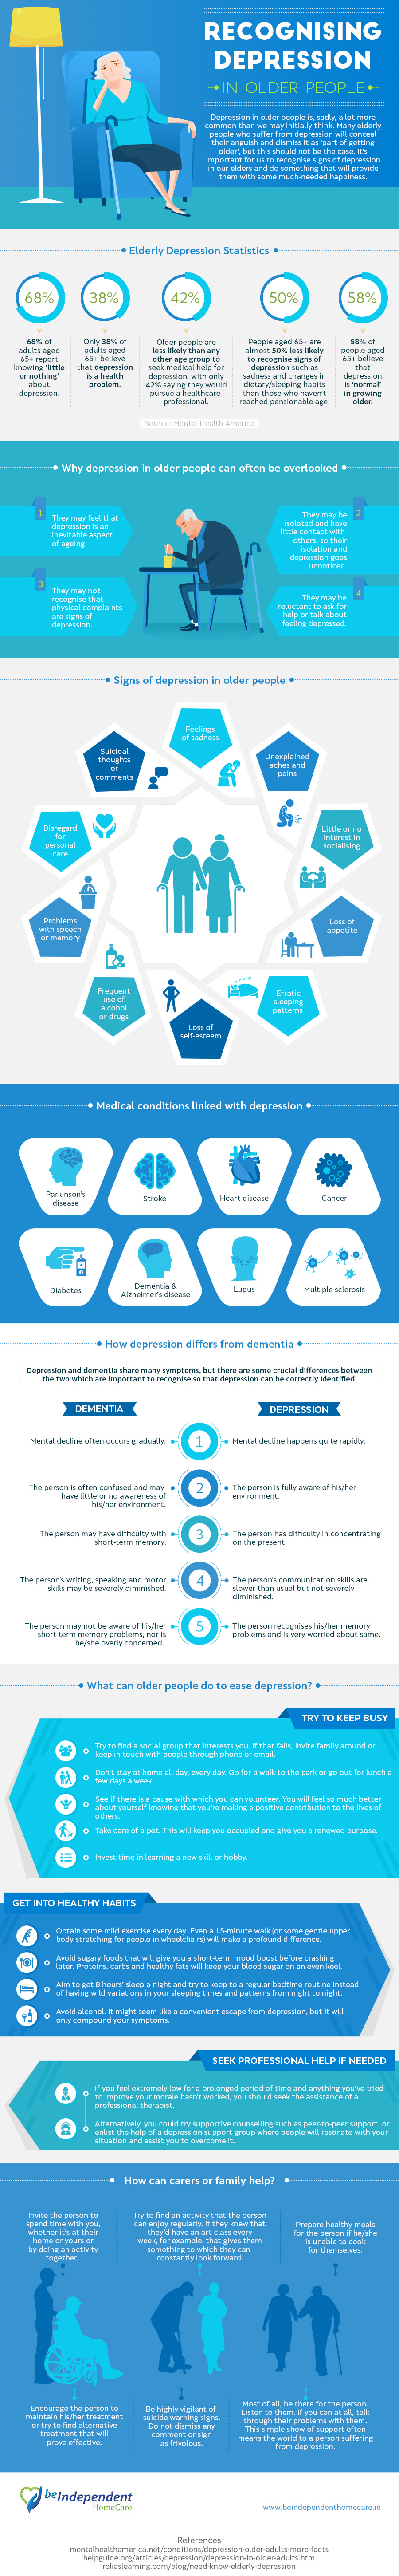 RECOGNIZING DEPRESSION IN OLDER PEOPLE